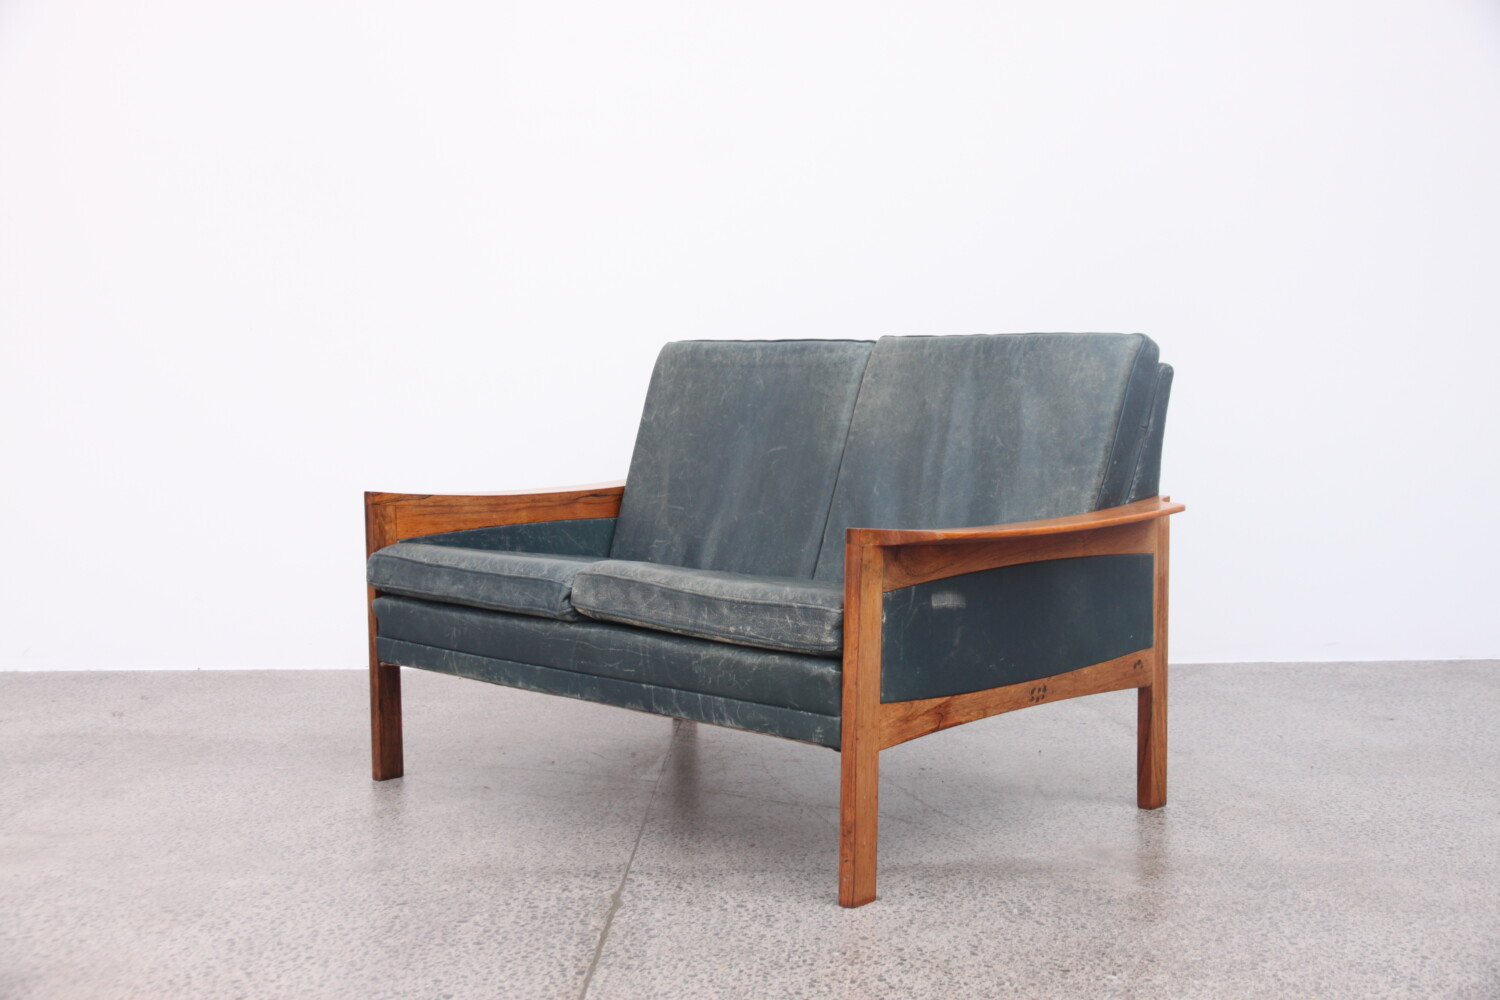 Leather Sofa by Arne Wahl Iverson